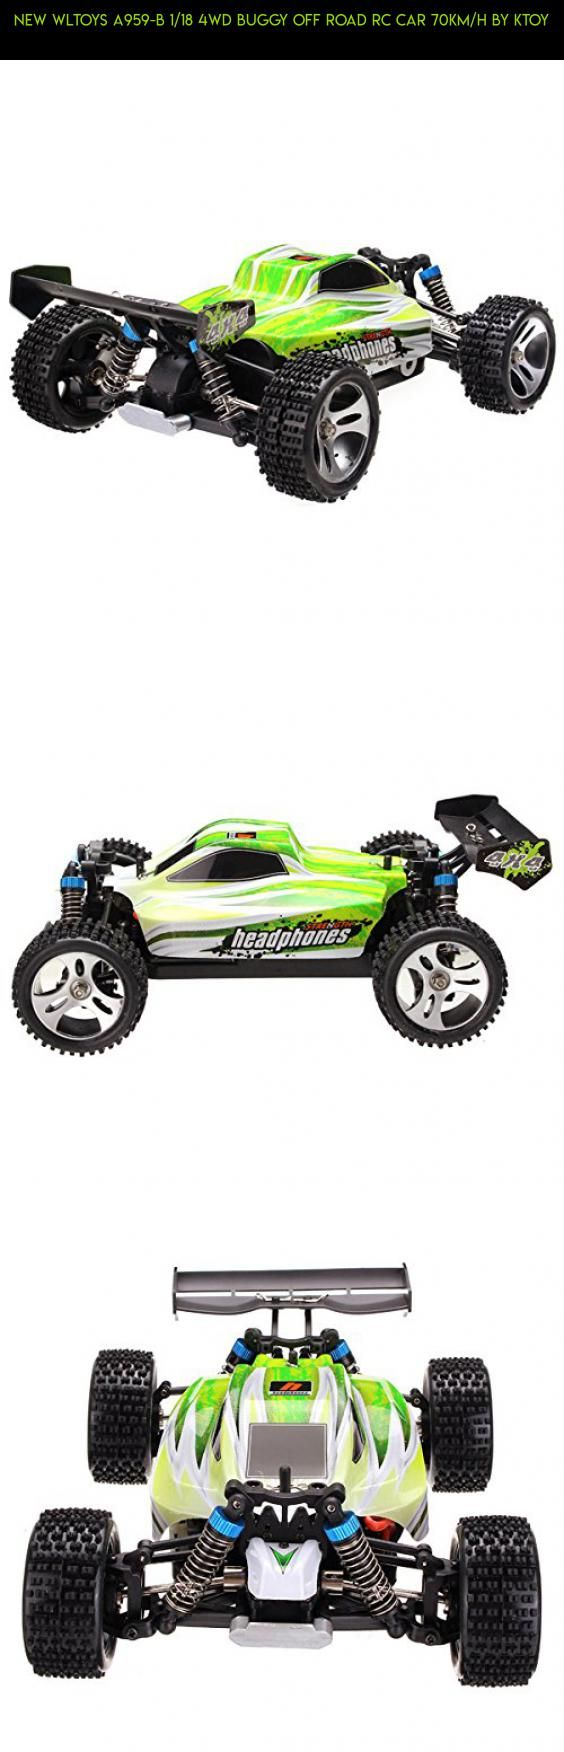 New WLtoys A959-B 1/18 4WD Buggy Off Road RC Car 70km/h By KTOY #camera #drone #kit #shopping #parts #fpv #gadgets #4wd #products #plans #racing #wltoys #rc #technology #tech